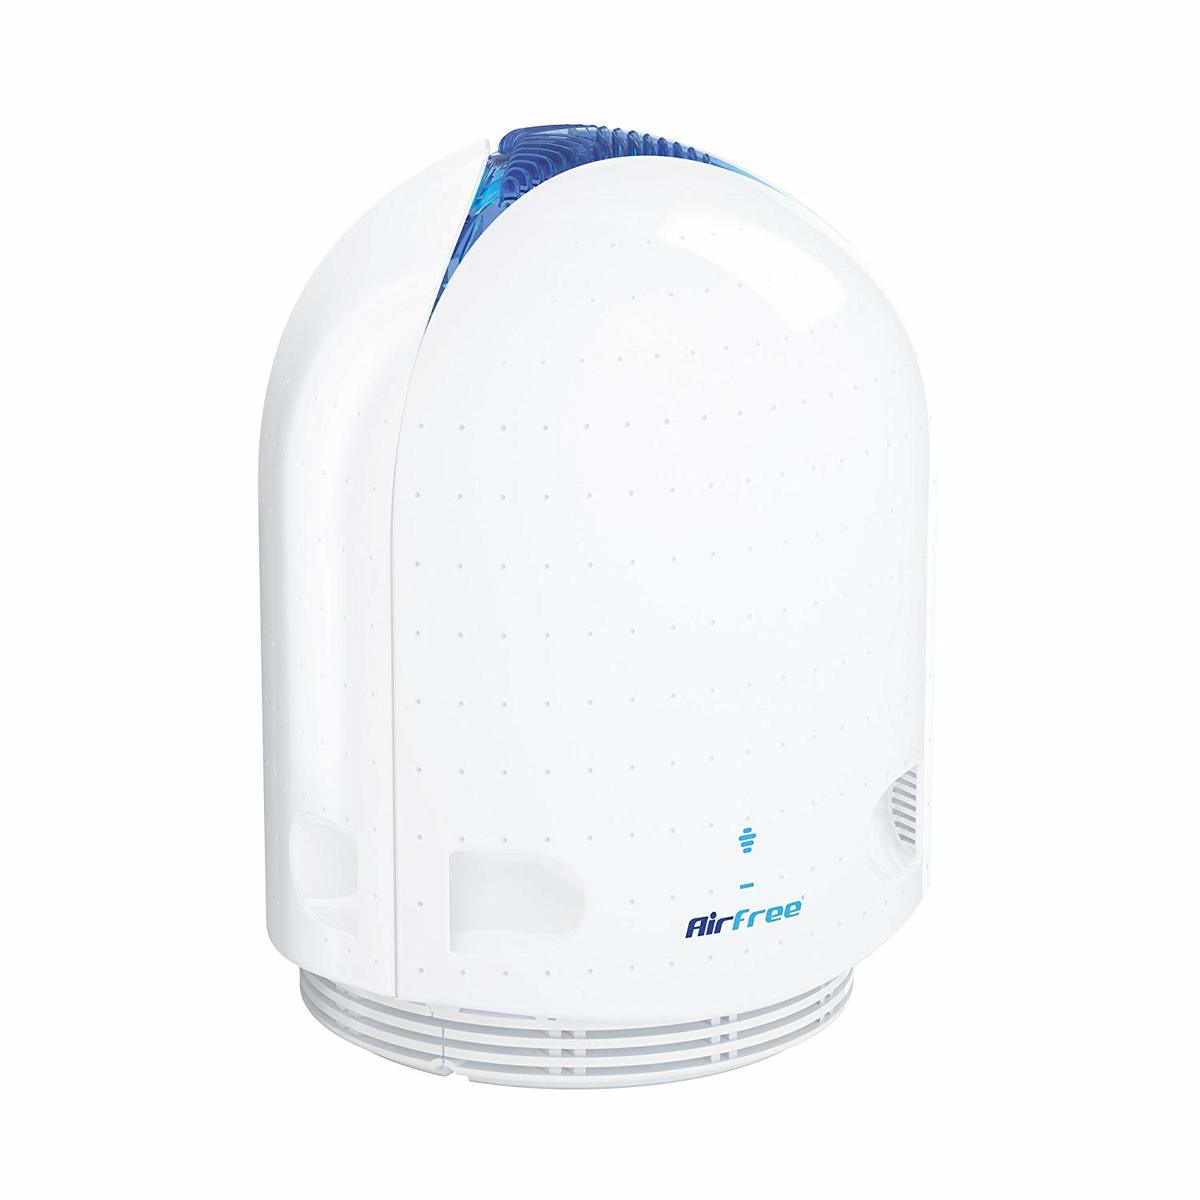 Airfree IRIS40 IRIS 40 Air Purifier